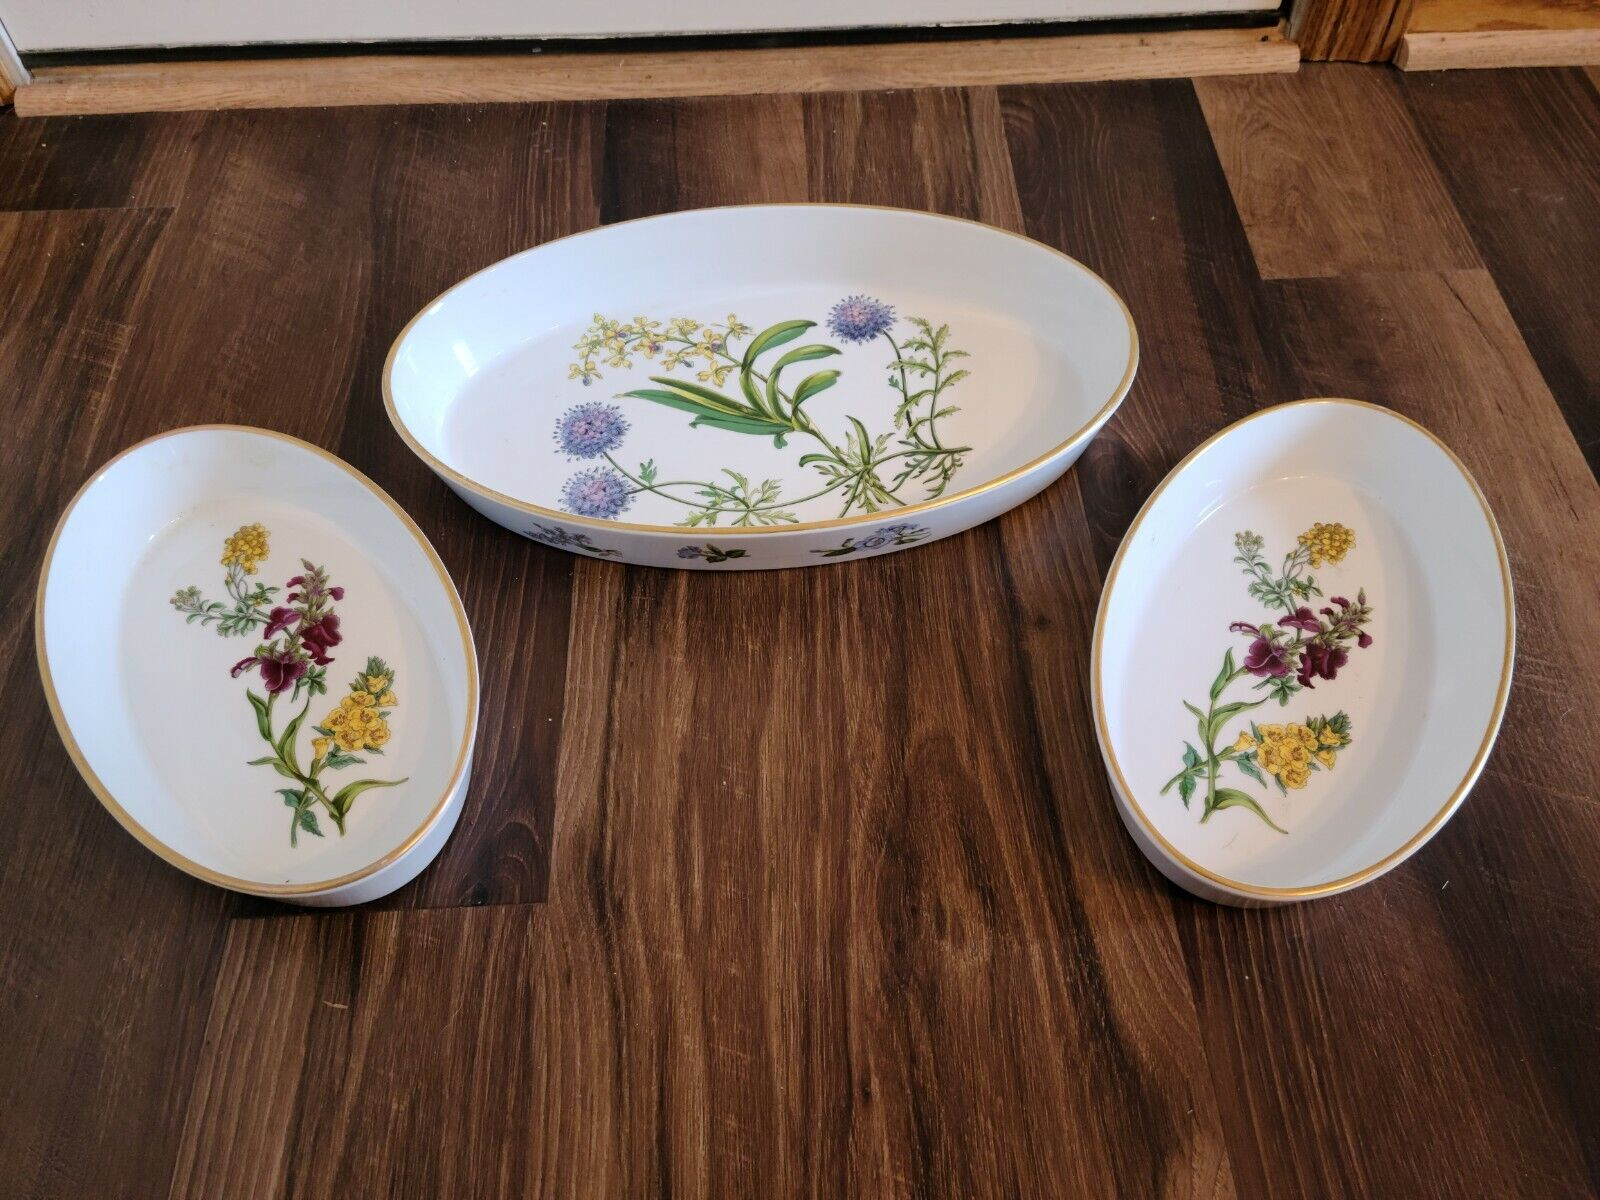 Spode Stafford wild rose wild flower oven to tableware made in ...